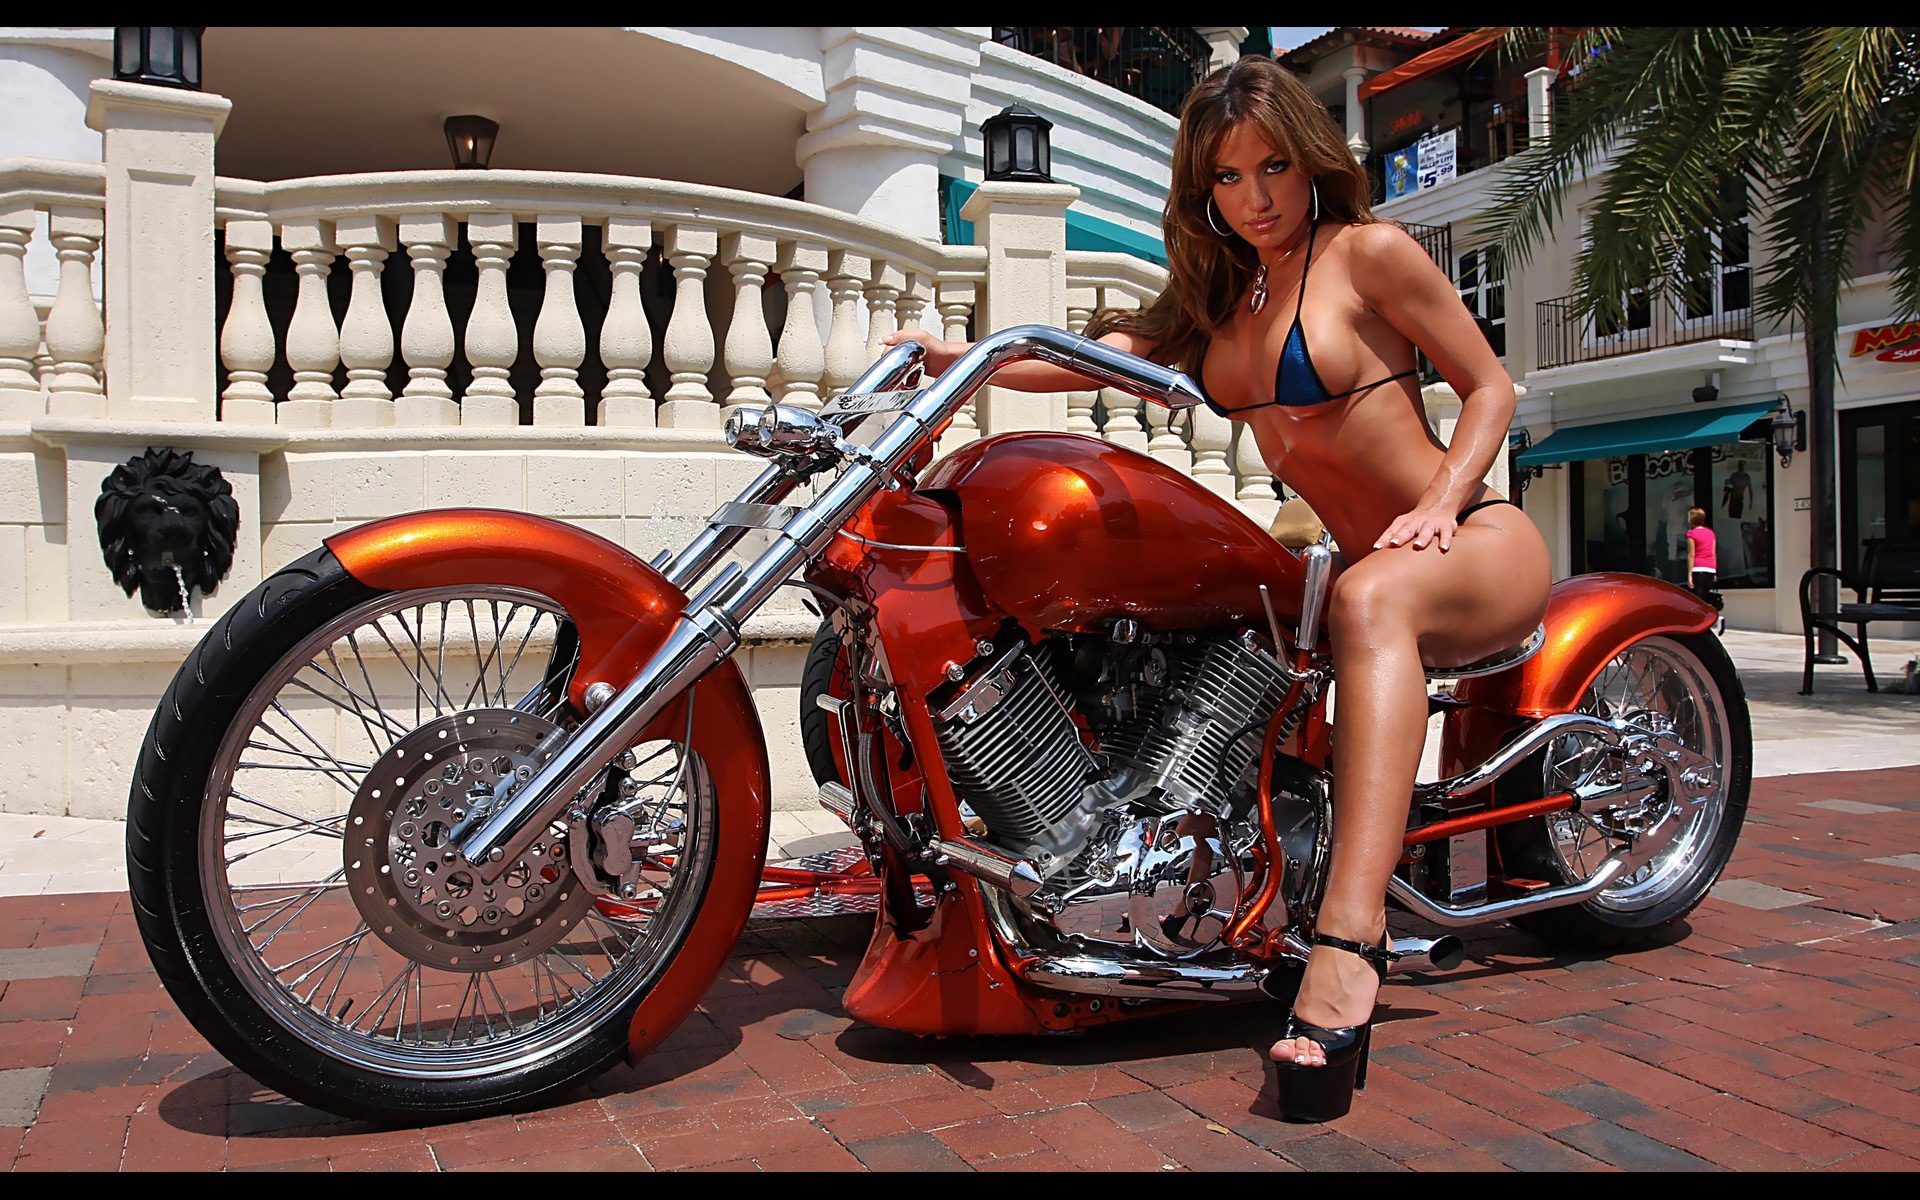 Custom Chopper Motorcycles and Girls 1920 x 1200 · 914 kB · jpeg